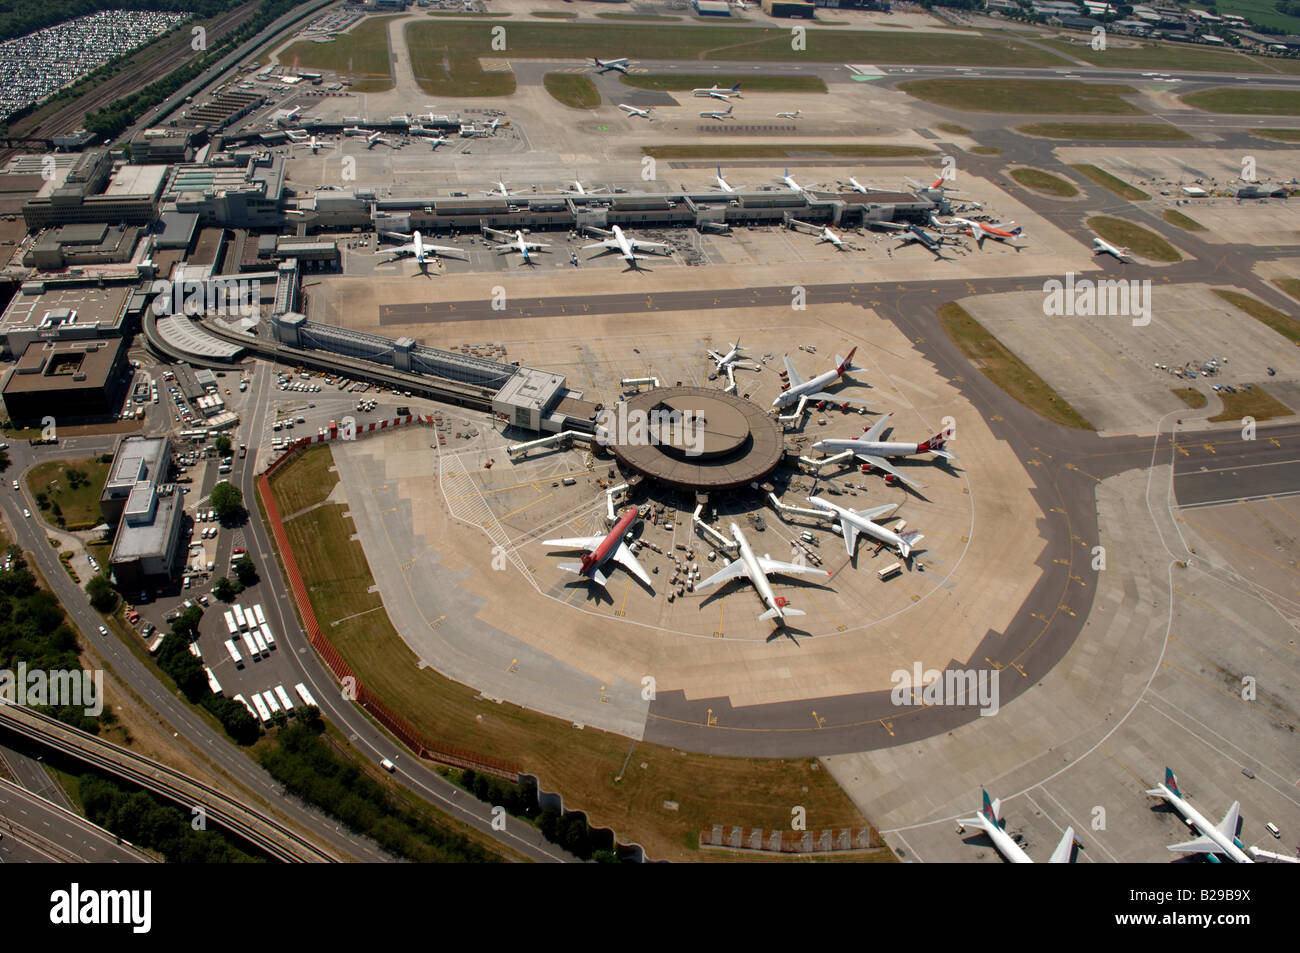 Gatwick Airport Date 12 03 2008 Ref ZB648 111149 0025 COMPULSORY CREDIT World Pictures Photoshot - Stock Image